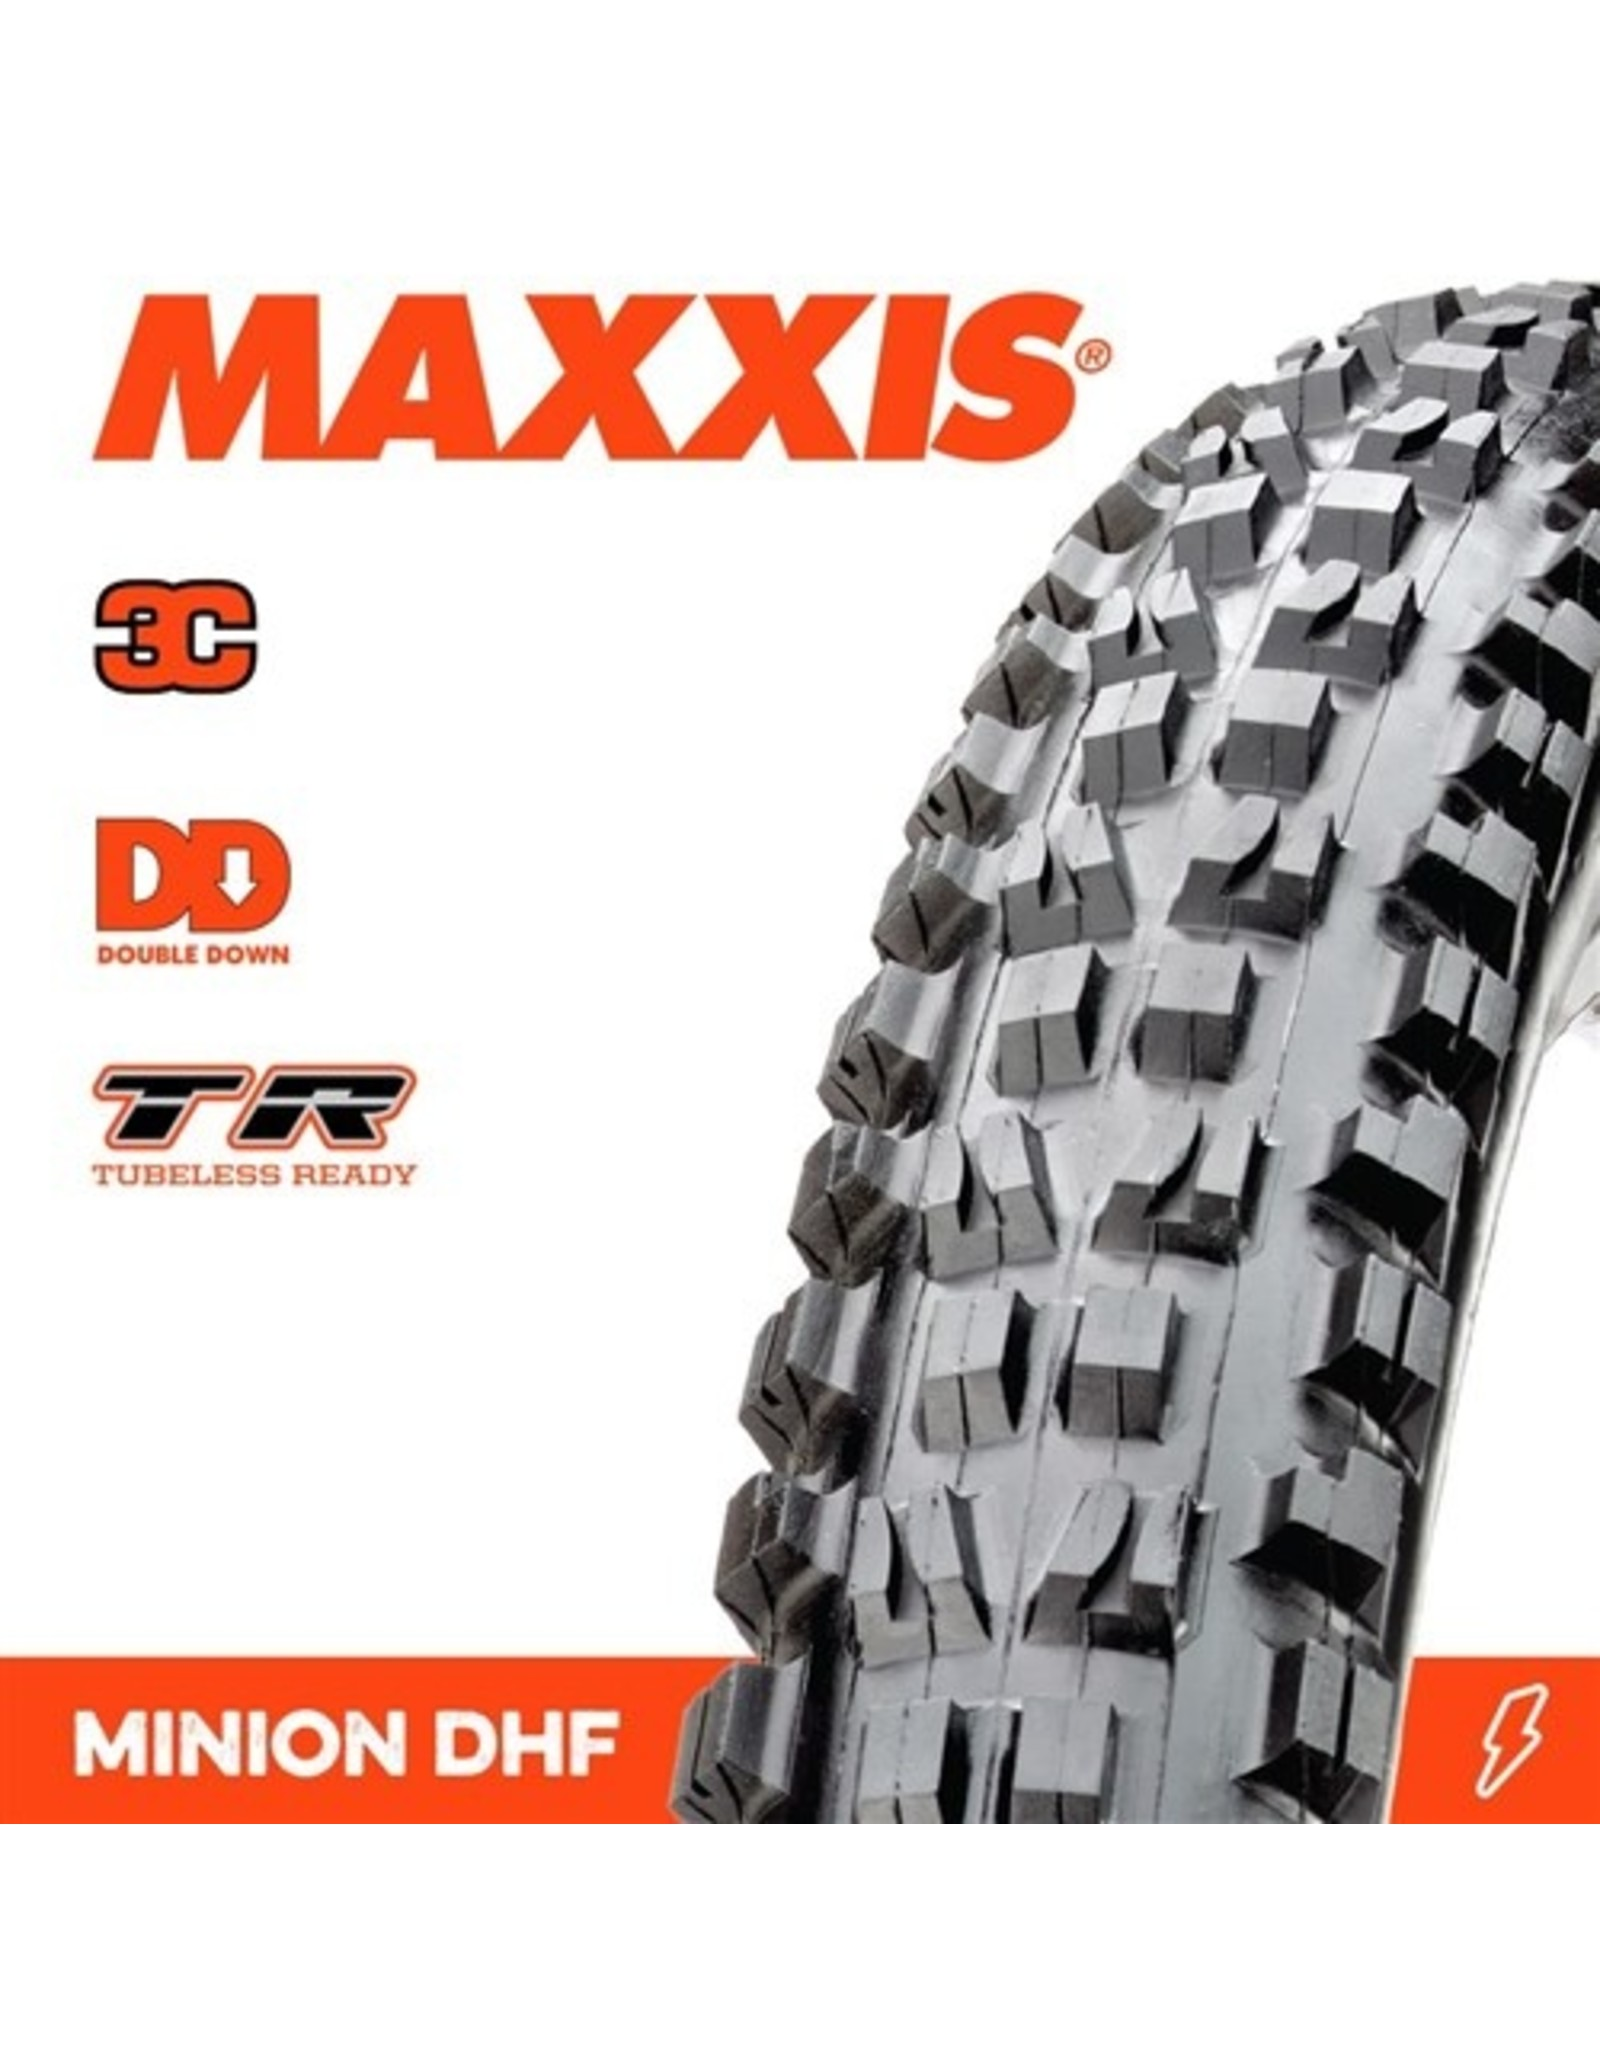 Maxxis MAXXIS MINION DHF DOUBLE DOWN